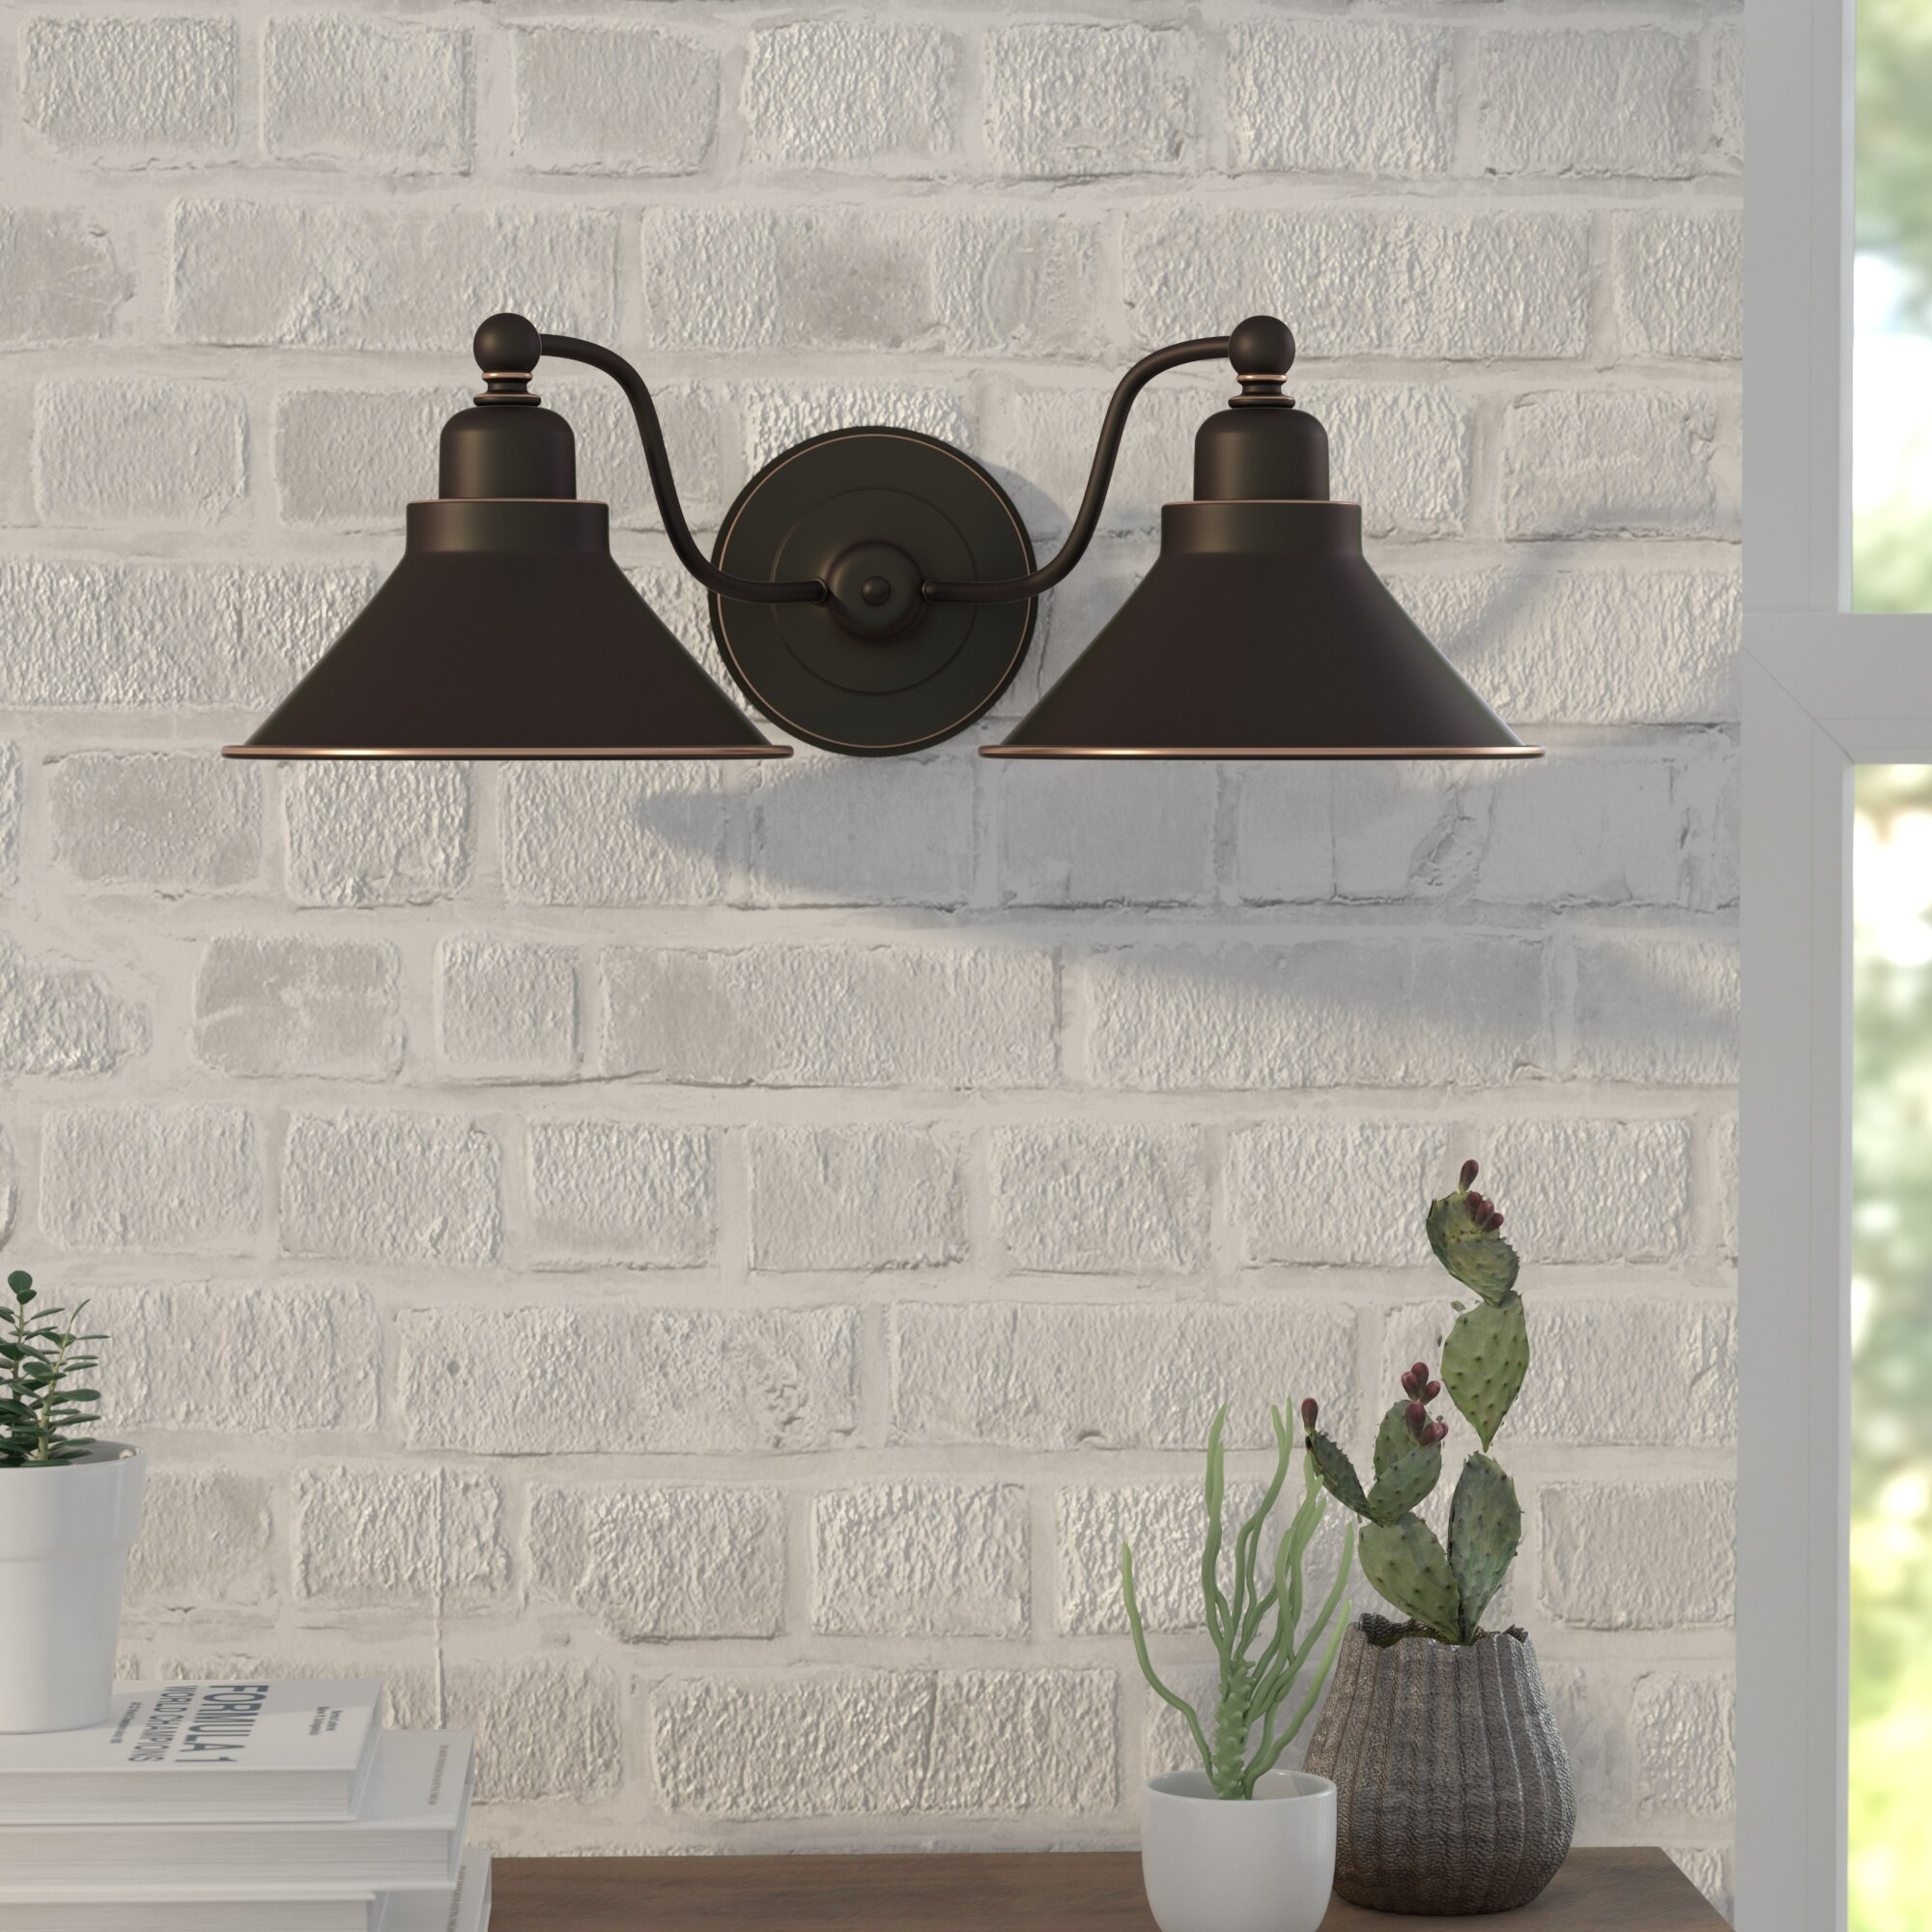 Mission Wall Sconce With Switch : Trent Austin Design Schaff 2-Light Wall Sconce in Mission Dust Bronze & Reviews Wayfair